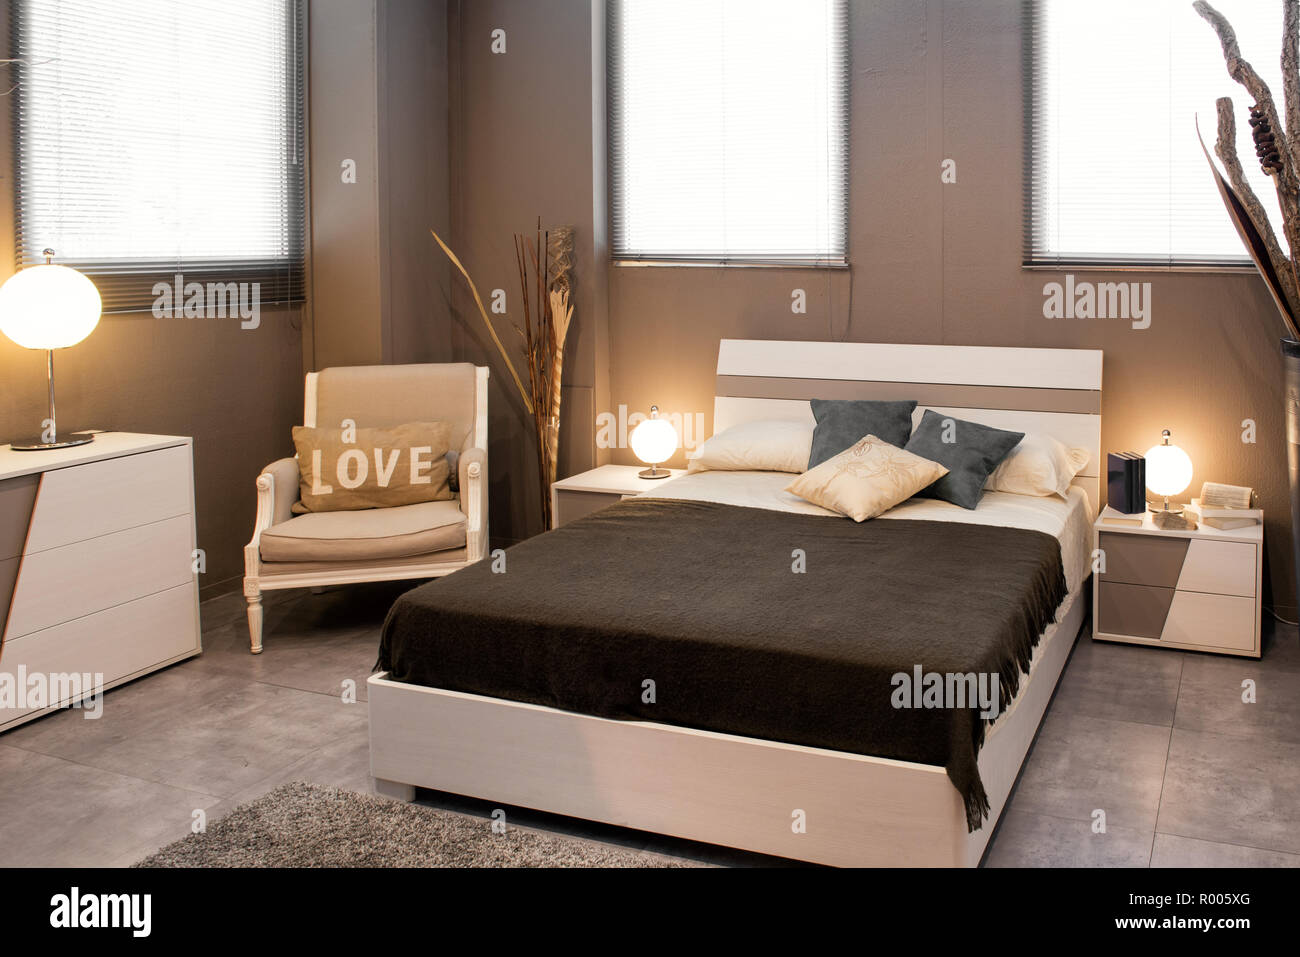 Romantic Brown Luxury Bedroom Interior With Divan Style Bed And Chair With Love Cushion Illuminated By Round Lamps Stock Photo Alamy